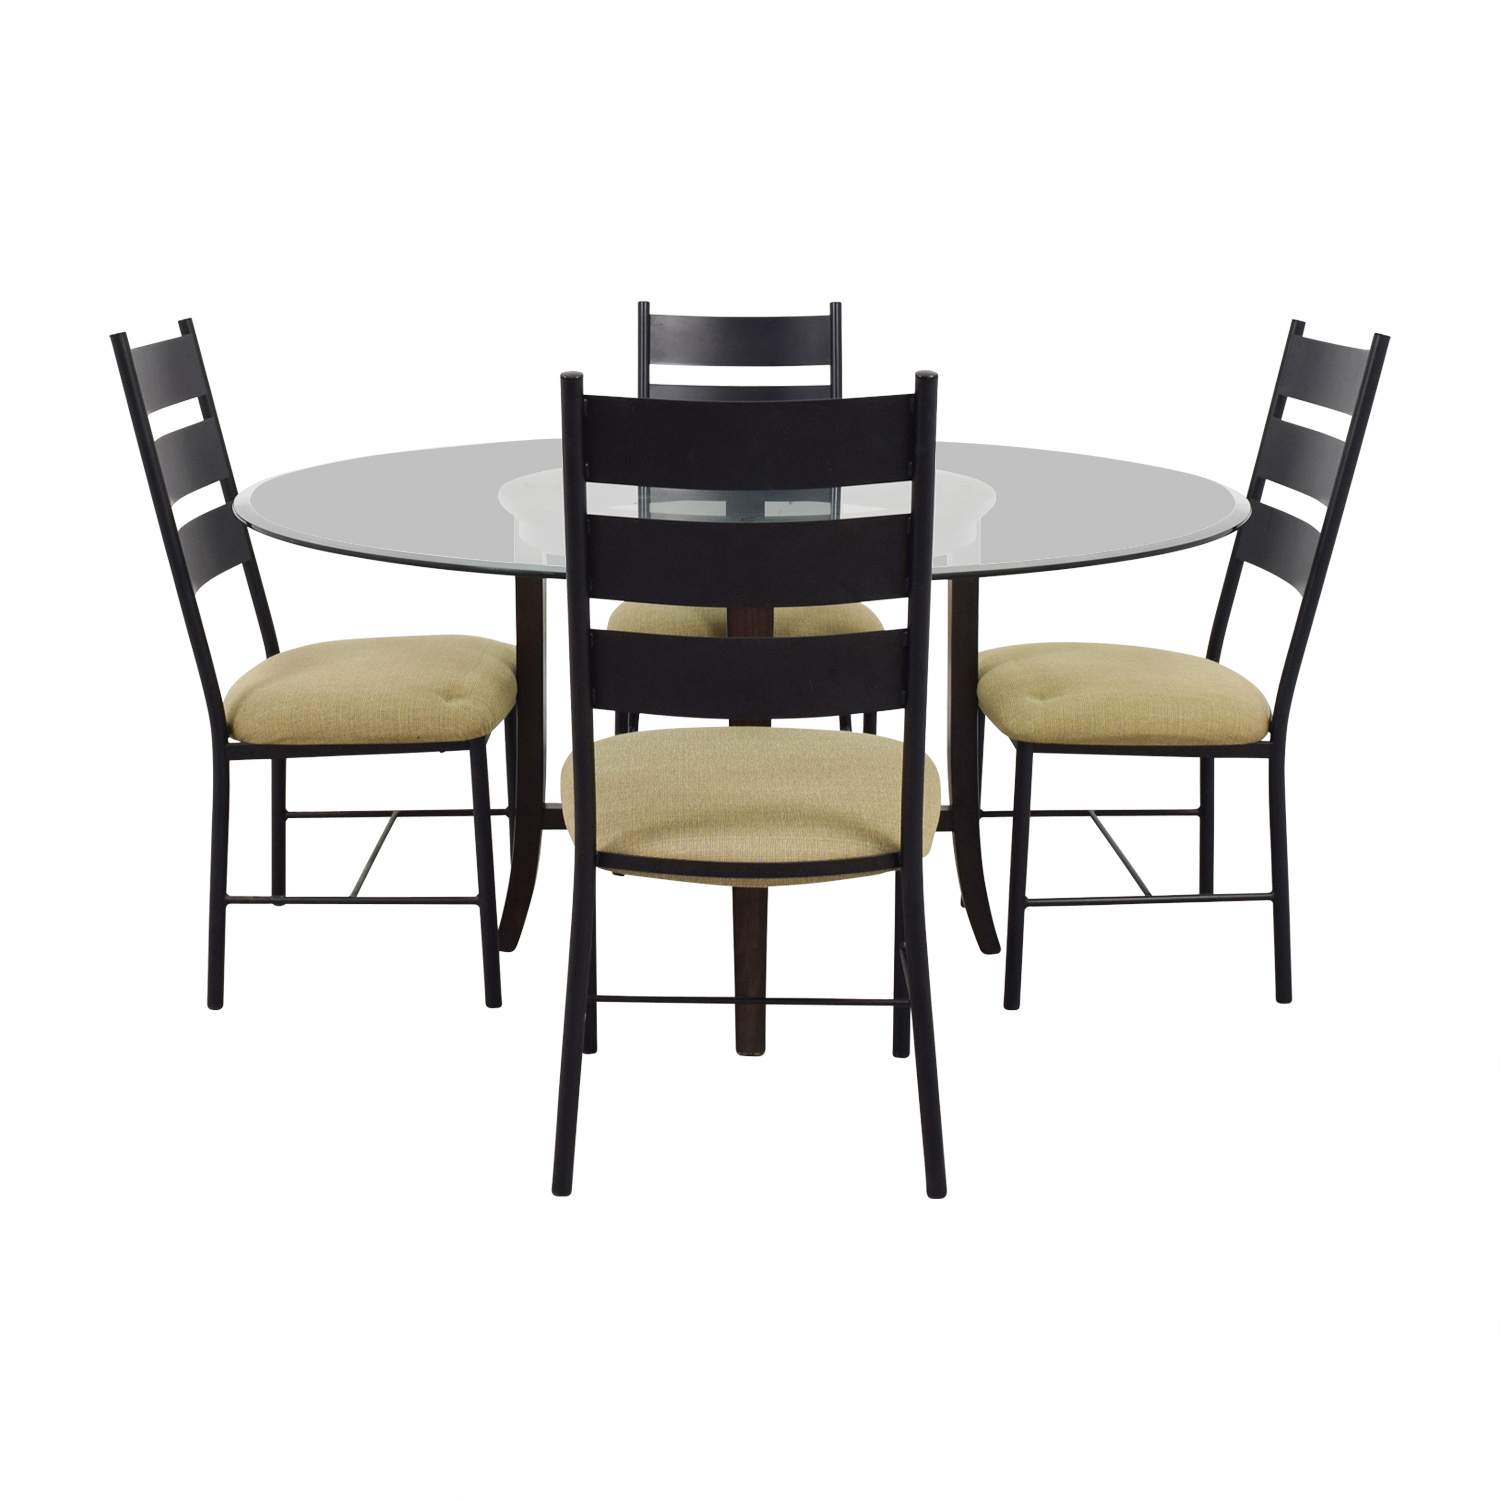 Crate & Barrel Crate & Barrel Halo Ebony Round Glass Top Dining Set Sofas